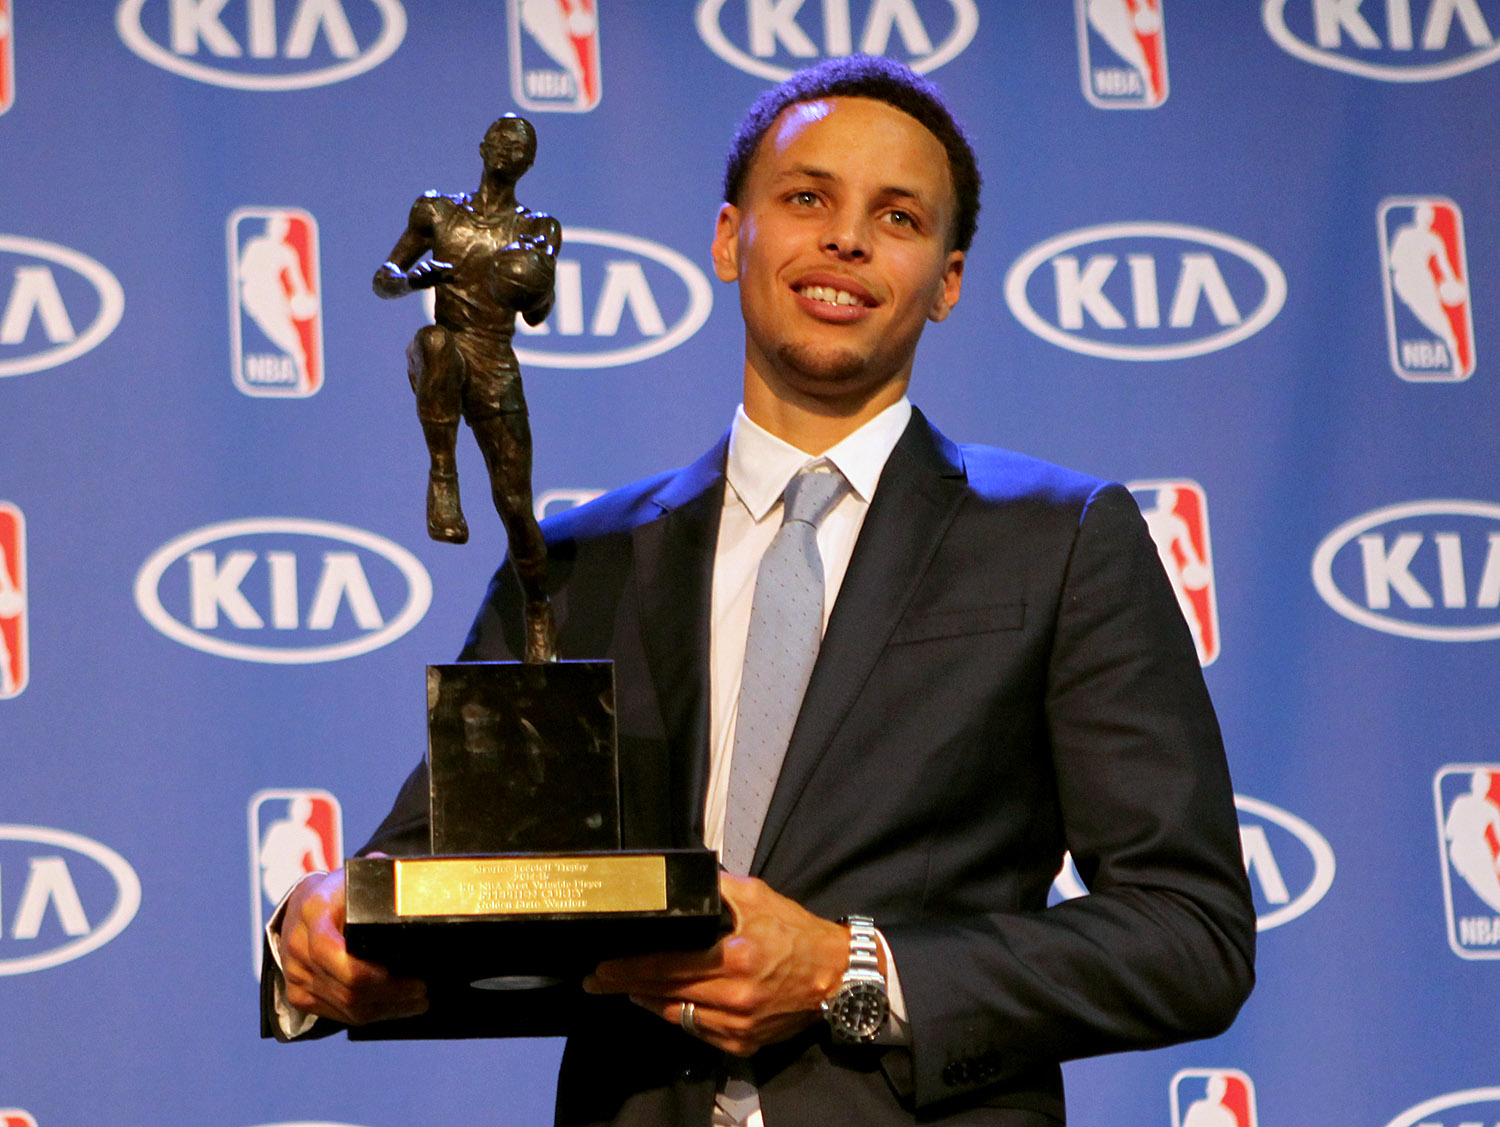 Golden State Warriors guard Stephen Curry accepts the NBA KIA Most Valuable Player for the 2014-2015 Season at the Warriors Training Facility in Oakland, Calif., on Monday, May 2, 2015.